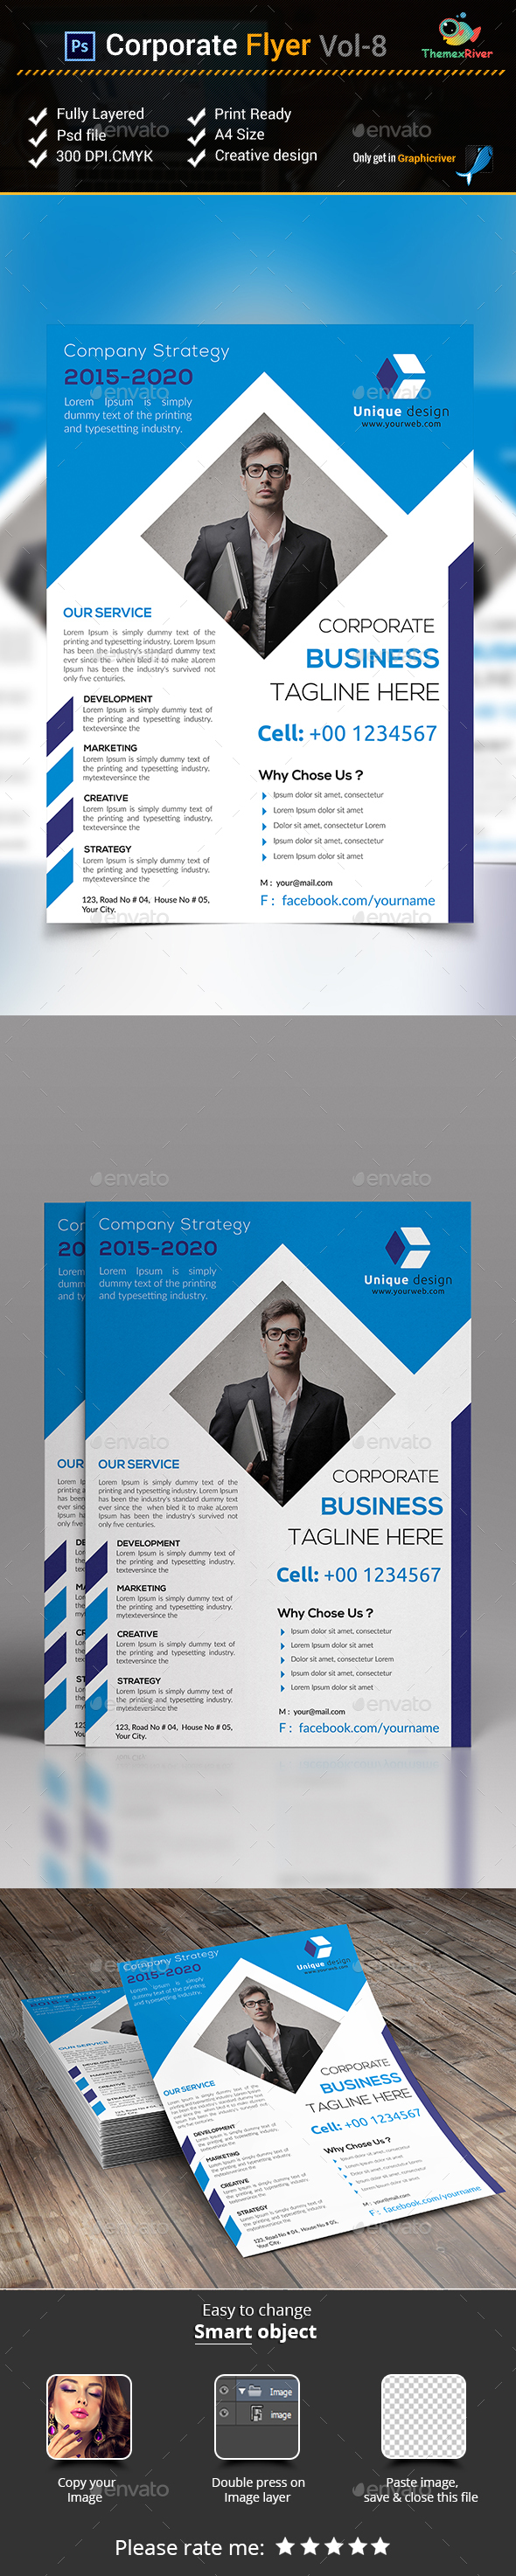 Corporate Flyer Vol- 8 - Corporate Flyers